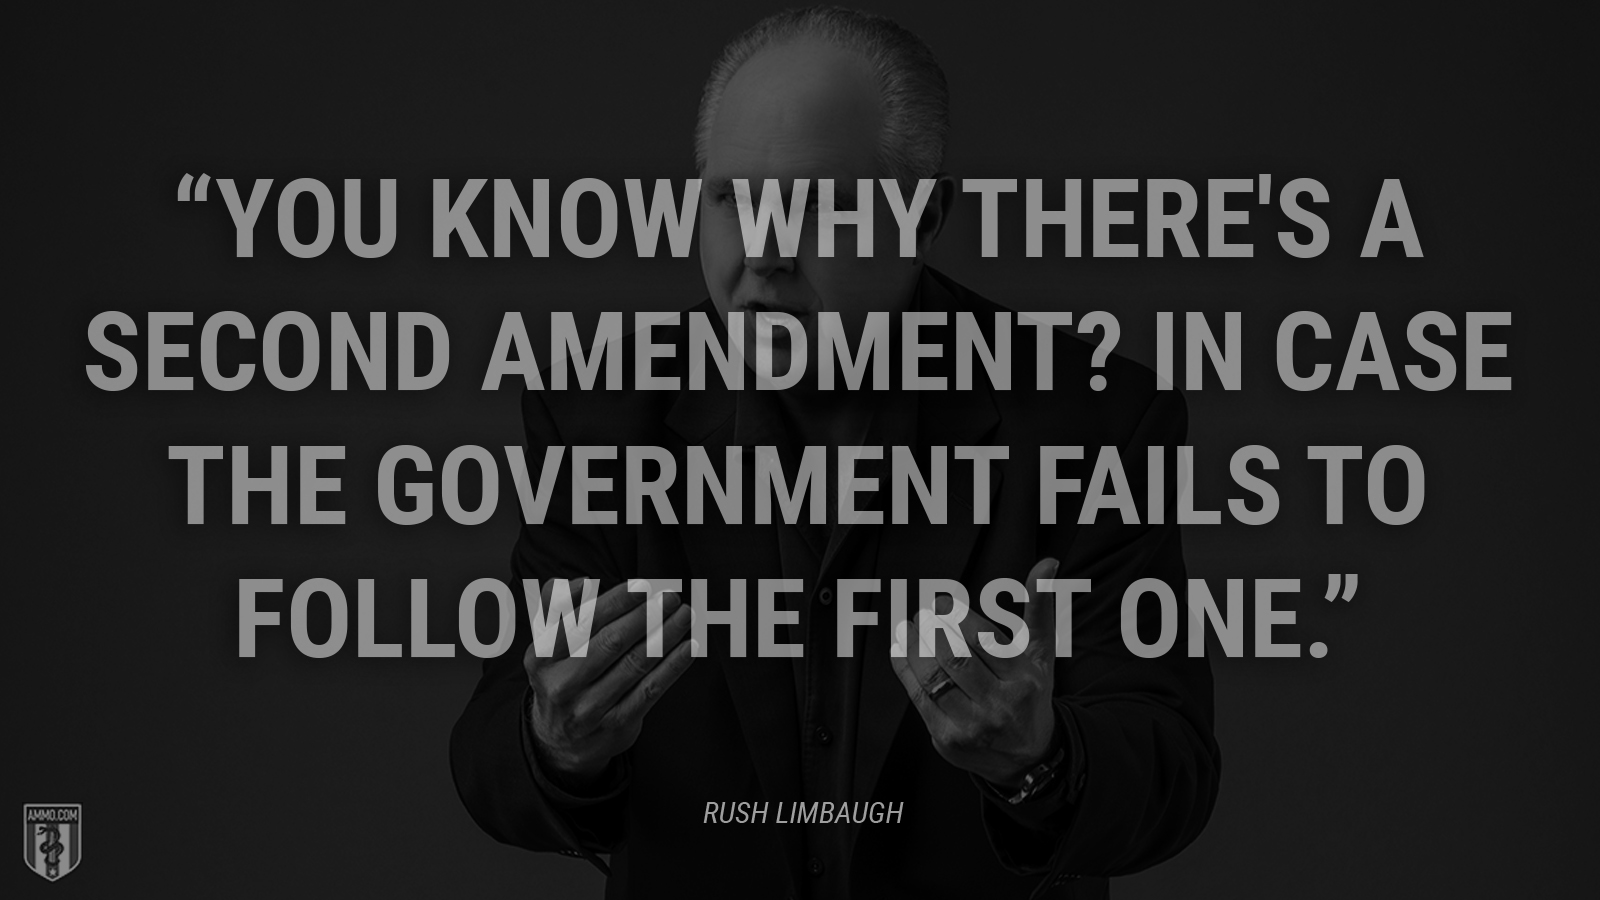 """You know why there's a Second Amendment? In case the government fails to follow the first one."" - Rush Limbaugh"